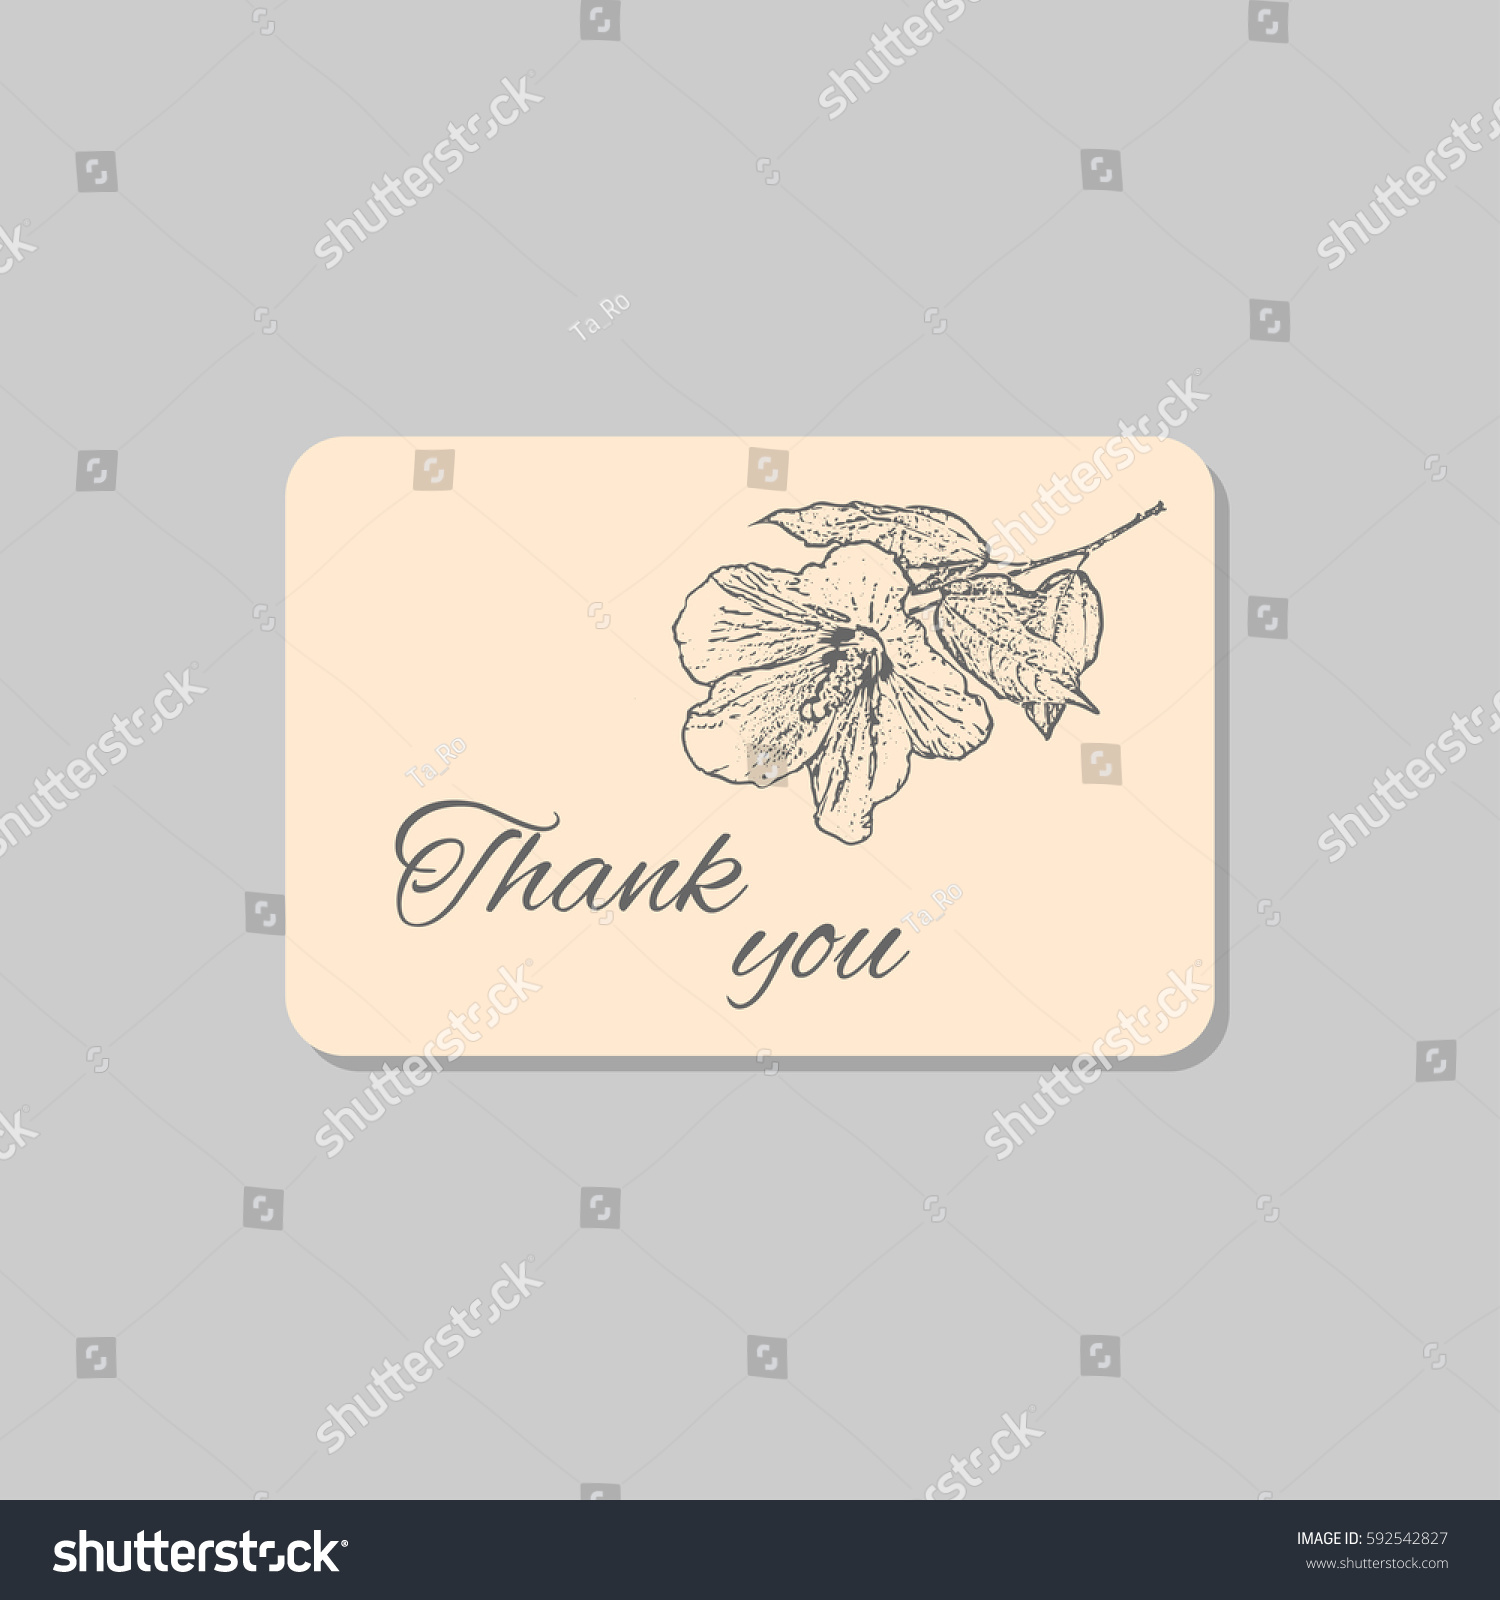 thank you card hawaii hibiscus flower stock vector 592542827 shutterstock. Black Bedroom Furniture Sets. Home Design Ideas